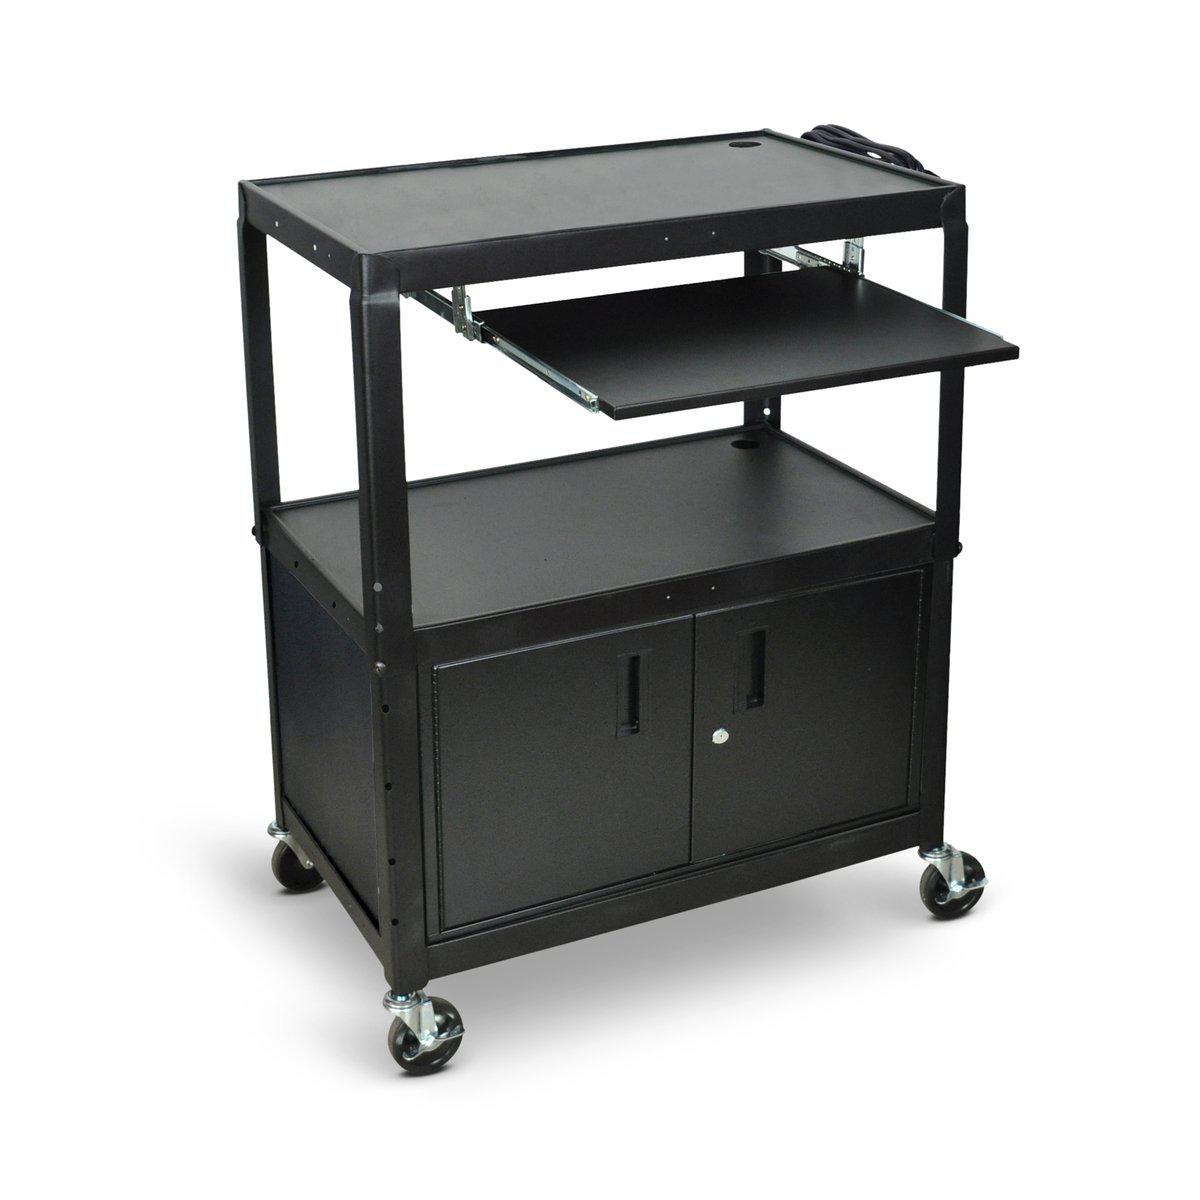 Extra Large Adjustable-Height Steel AV Cart with Cabinet and Pullout Keyboard Tray